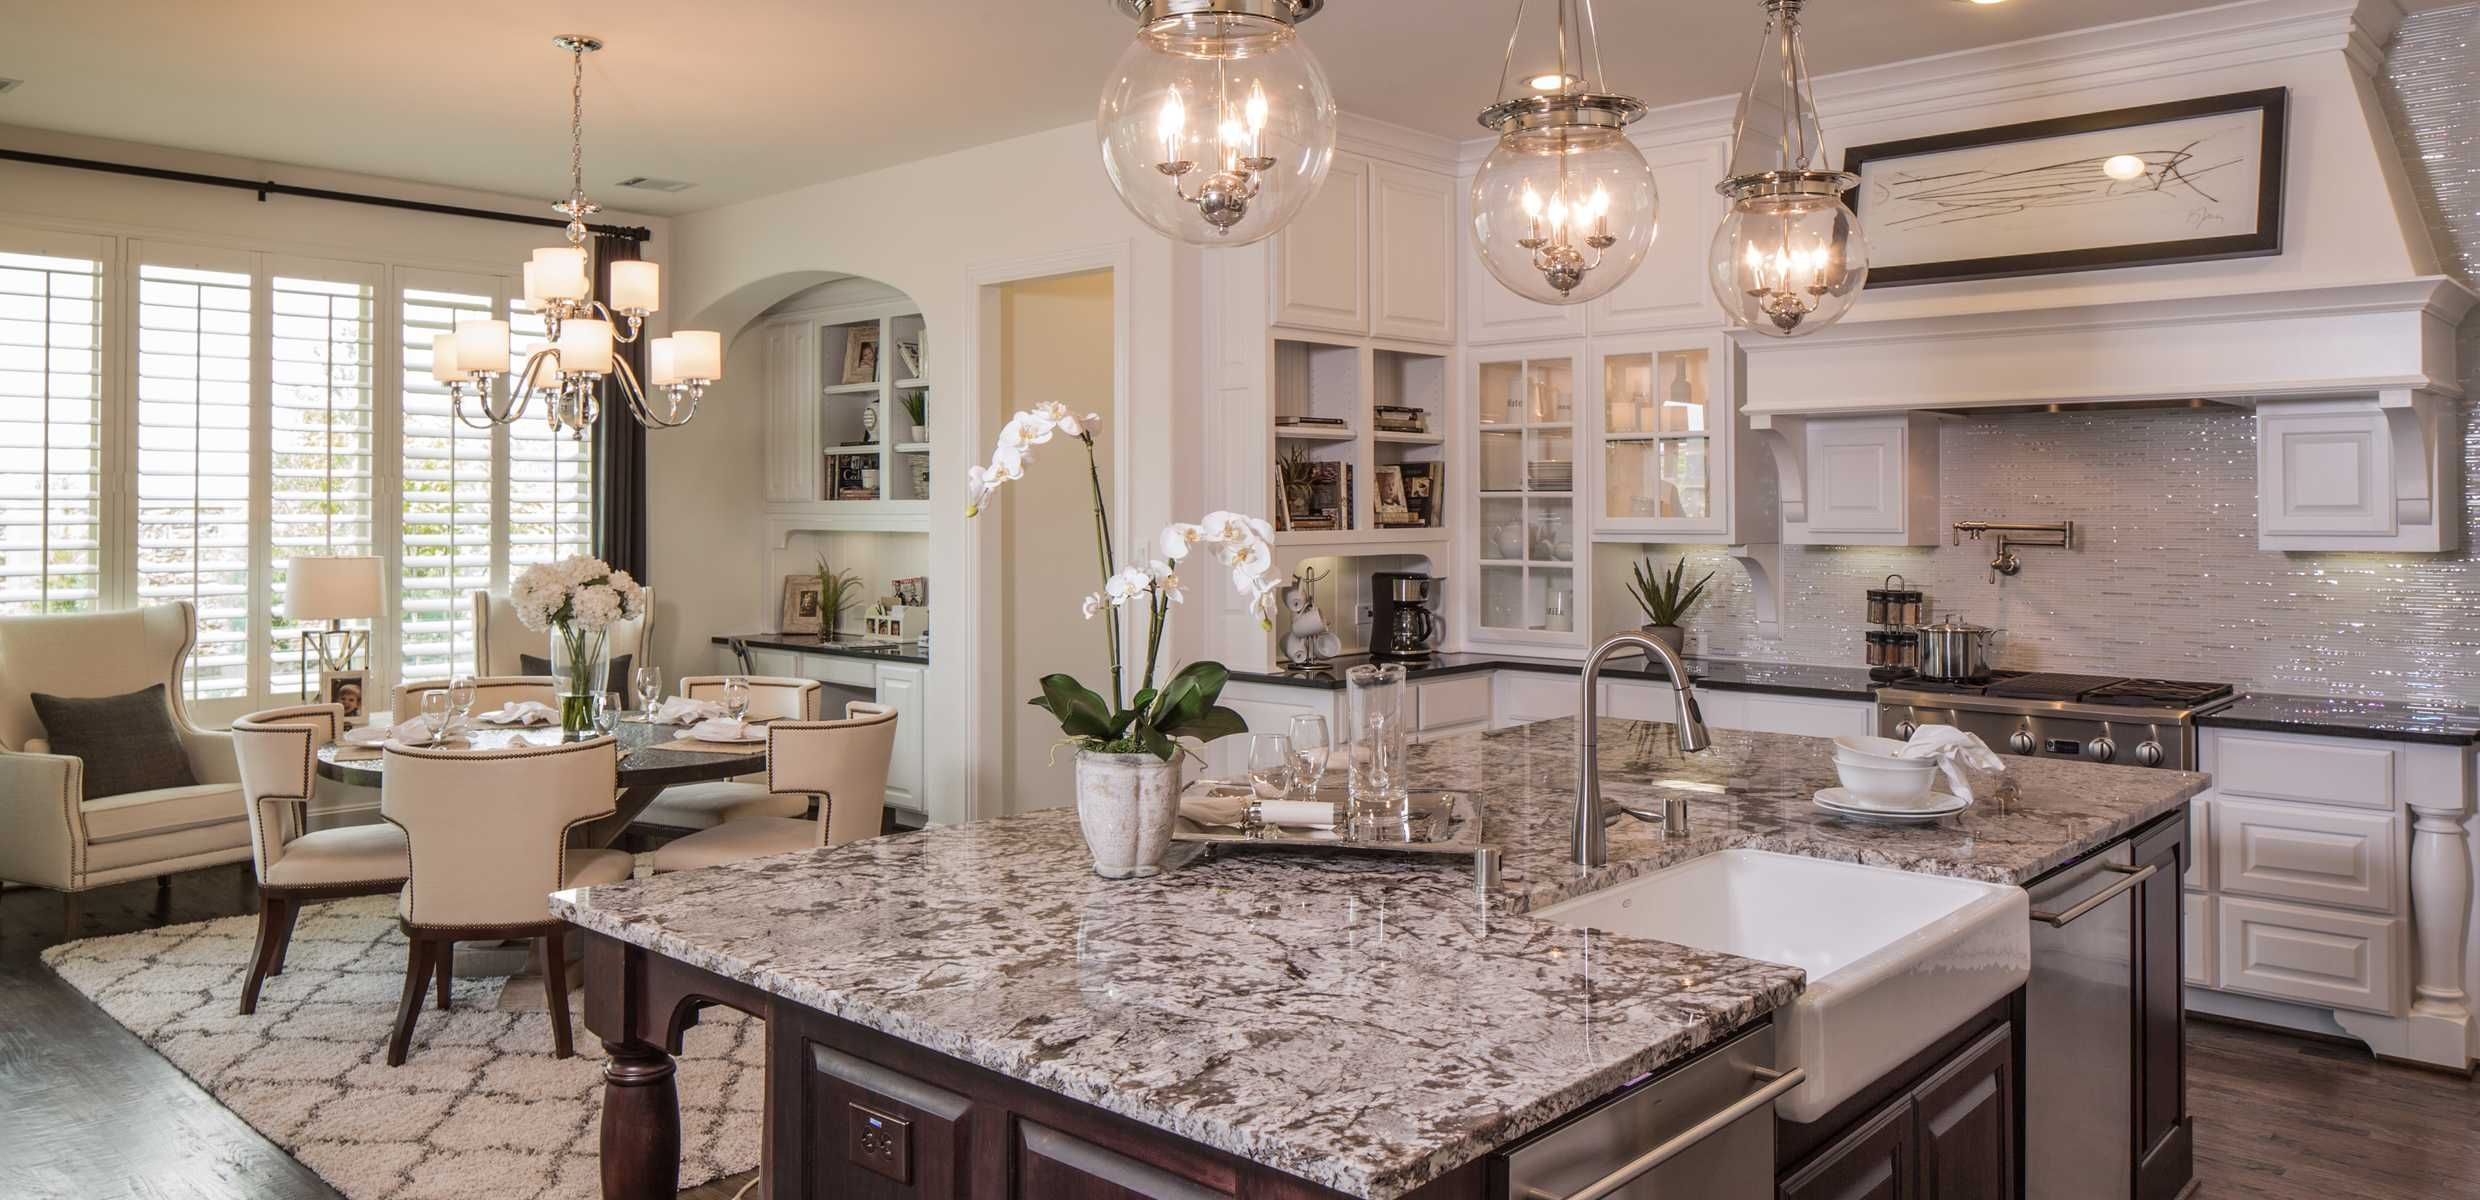 Gourmet Kitchen Design Style Image Review